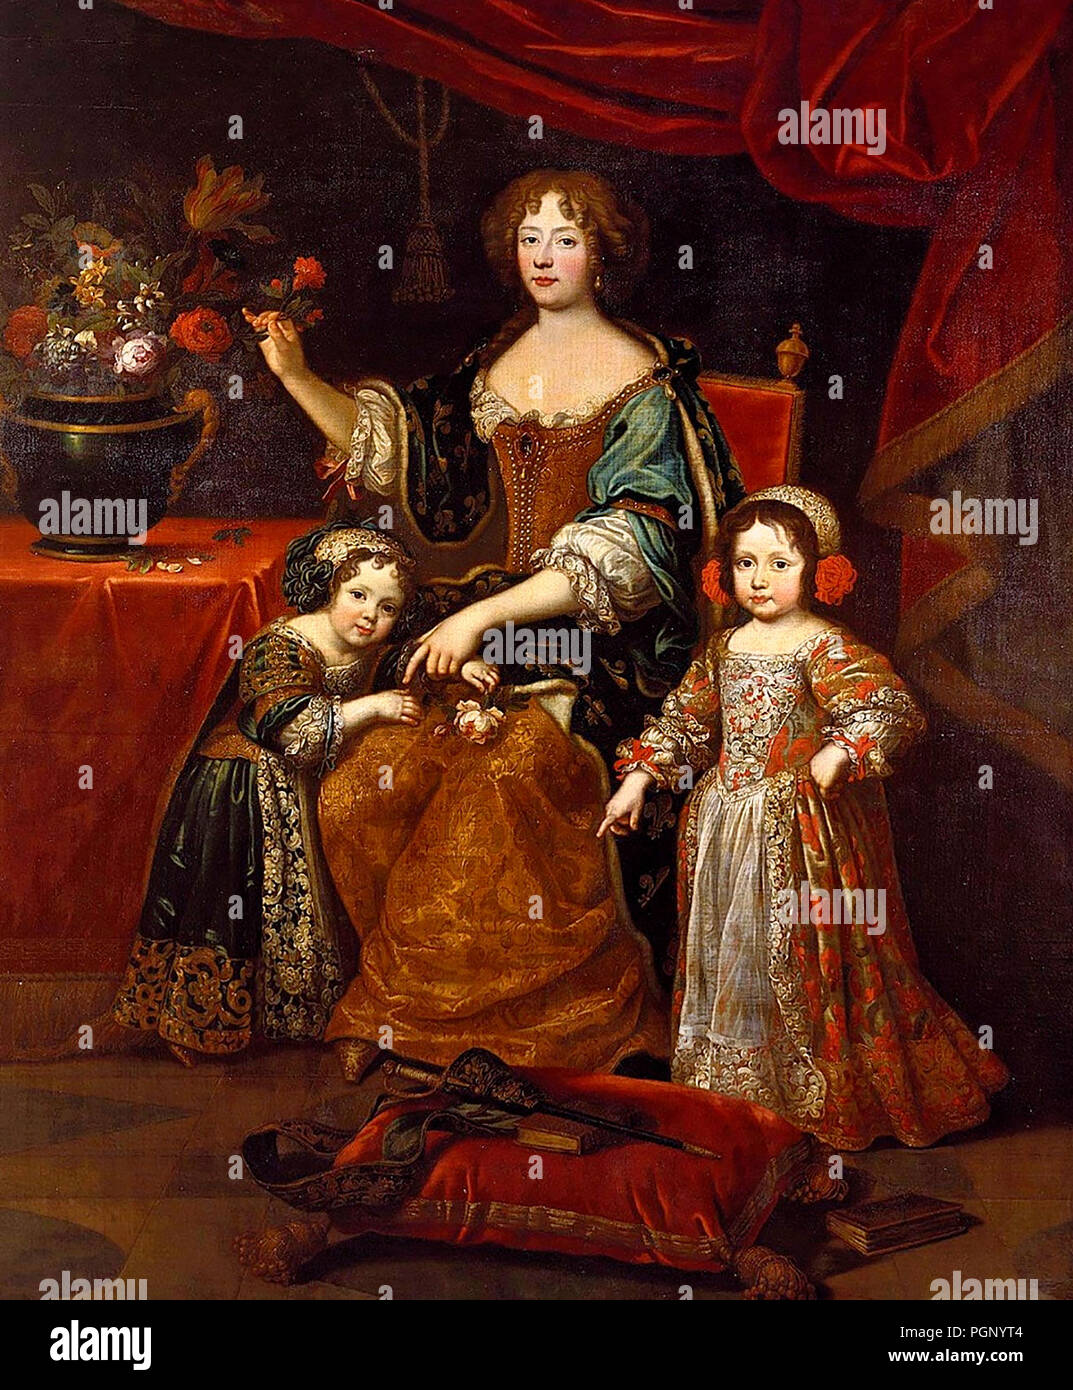 Elisabeth Charlotte of the Palatinate, Duchess of Orleans, and Her Children - Jean Gilbert Murat, circa 1837 - Stock Image